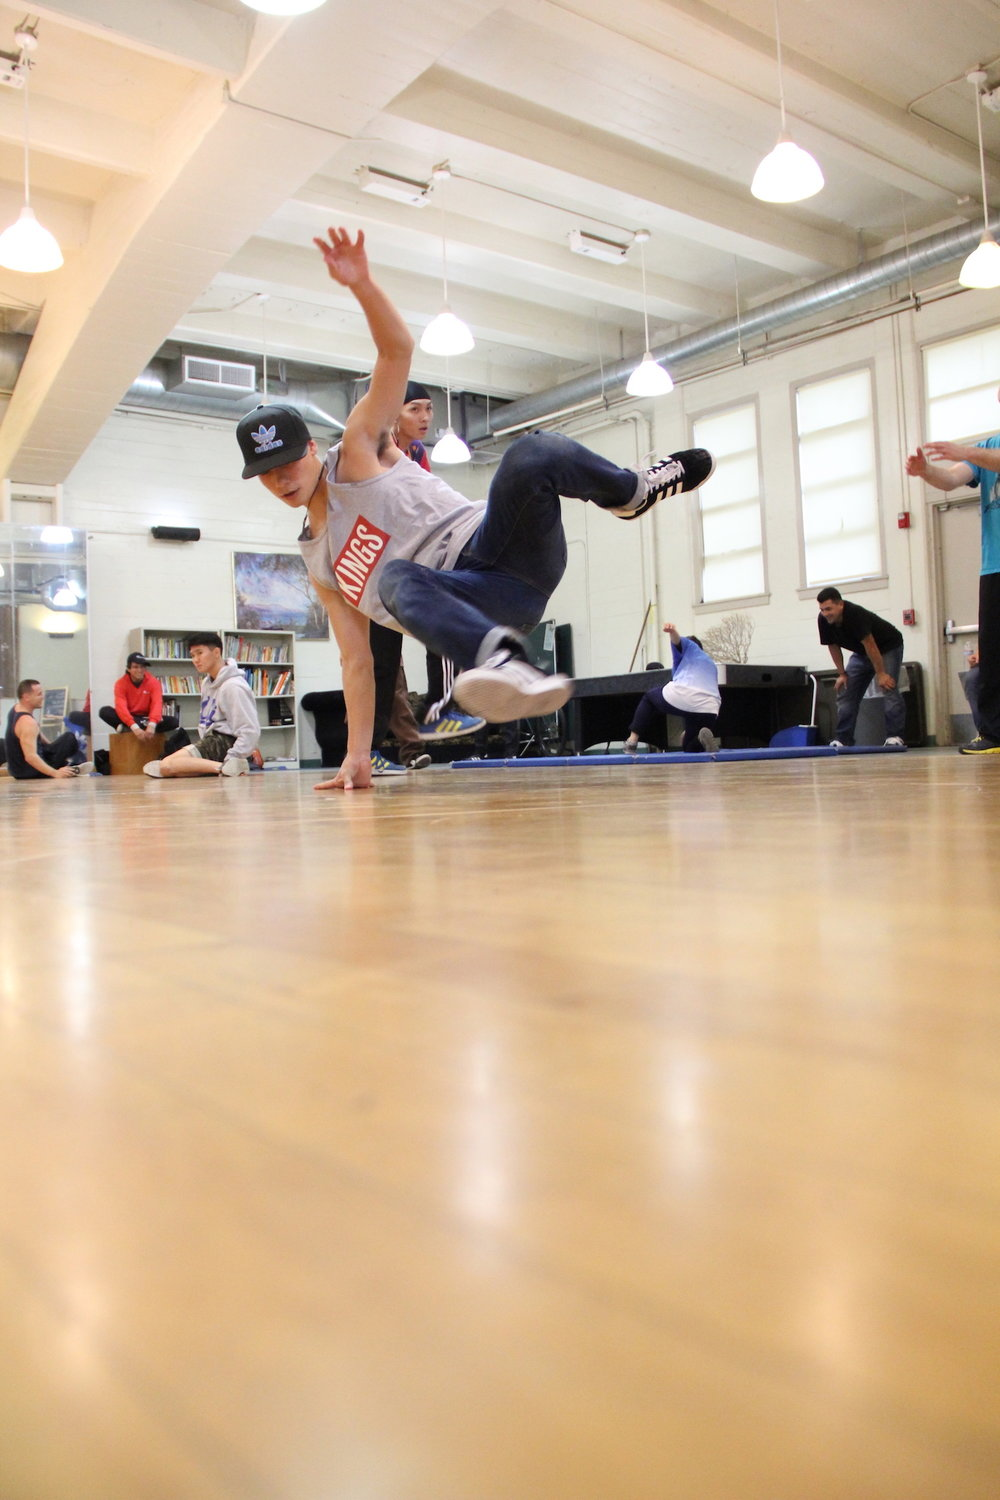 JUiCE Los Angeles Hip Hop Nonprofit Breakdance Music Art Community Youth Breakdance Los Angeles.JPG